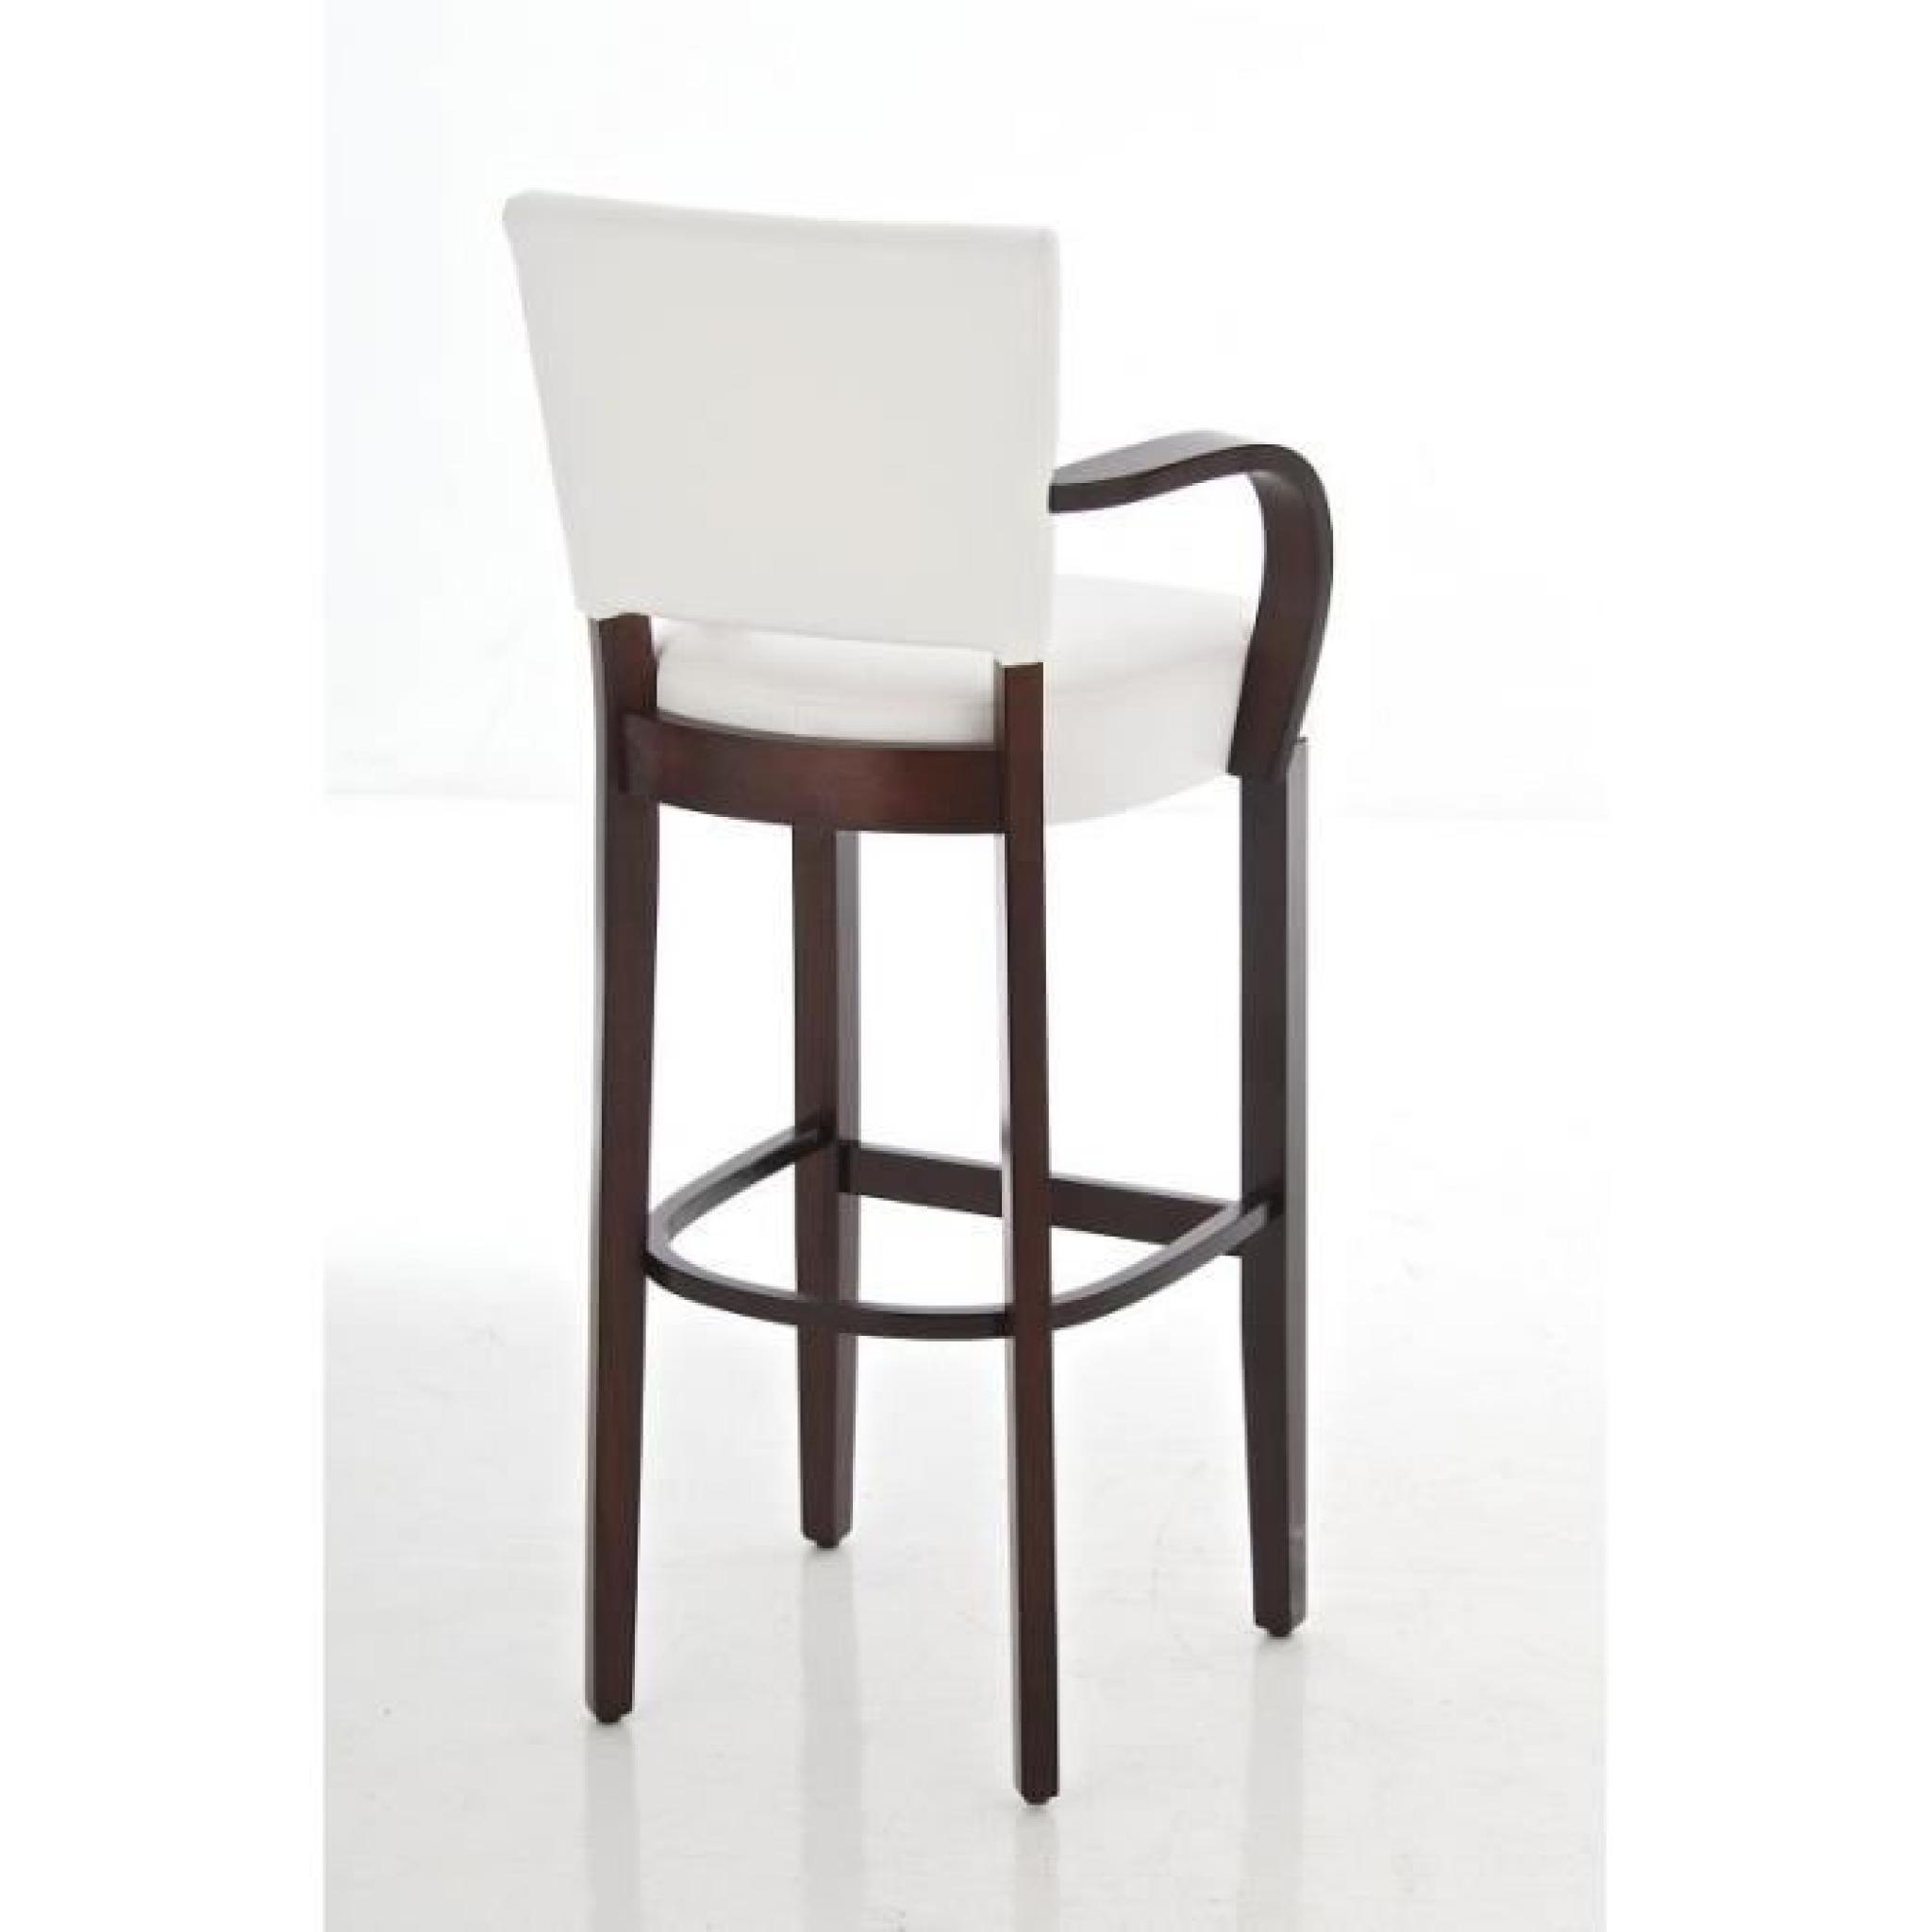 clp tabouret de bar rembourr lionel avec accoudoirs en bois et un rev tement en pu 5 couleurs. Black Bedroom Furniture Sets. Home Design Ideas